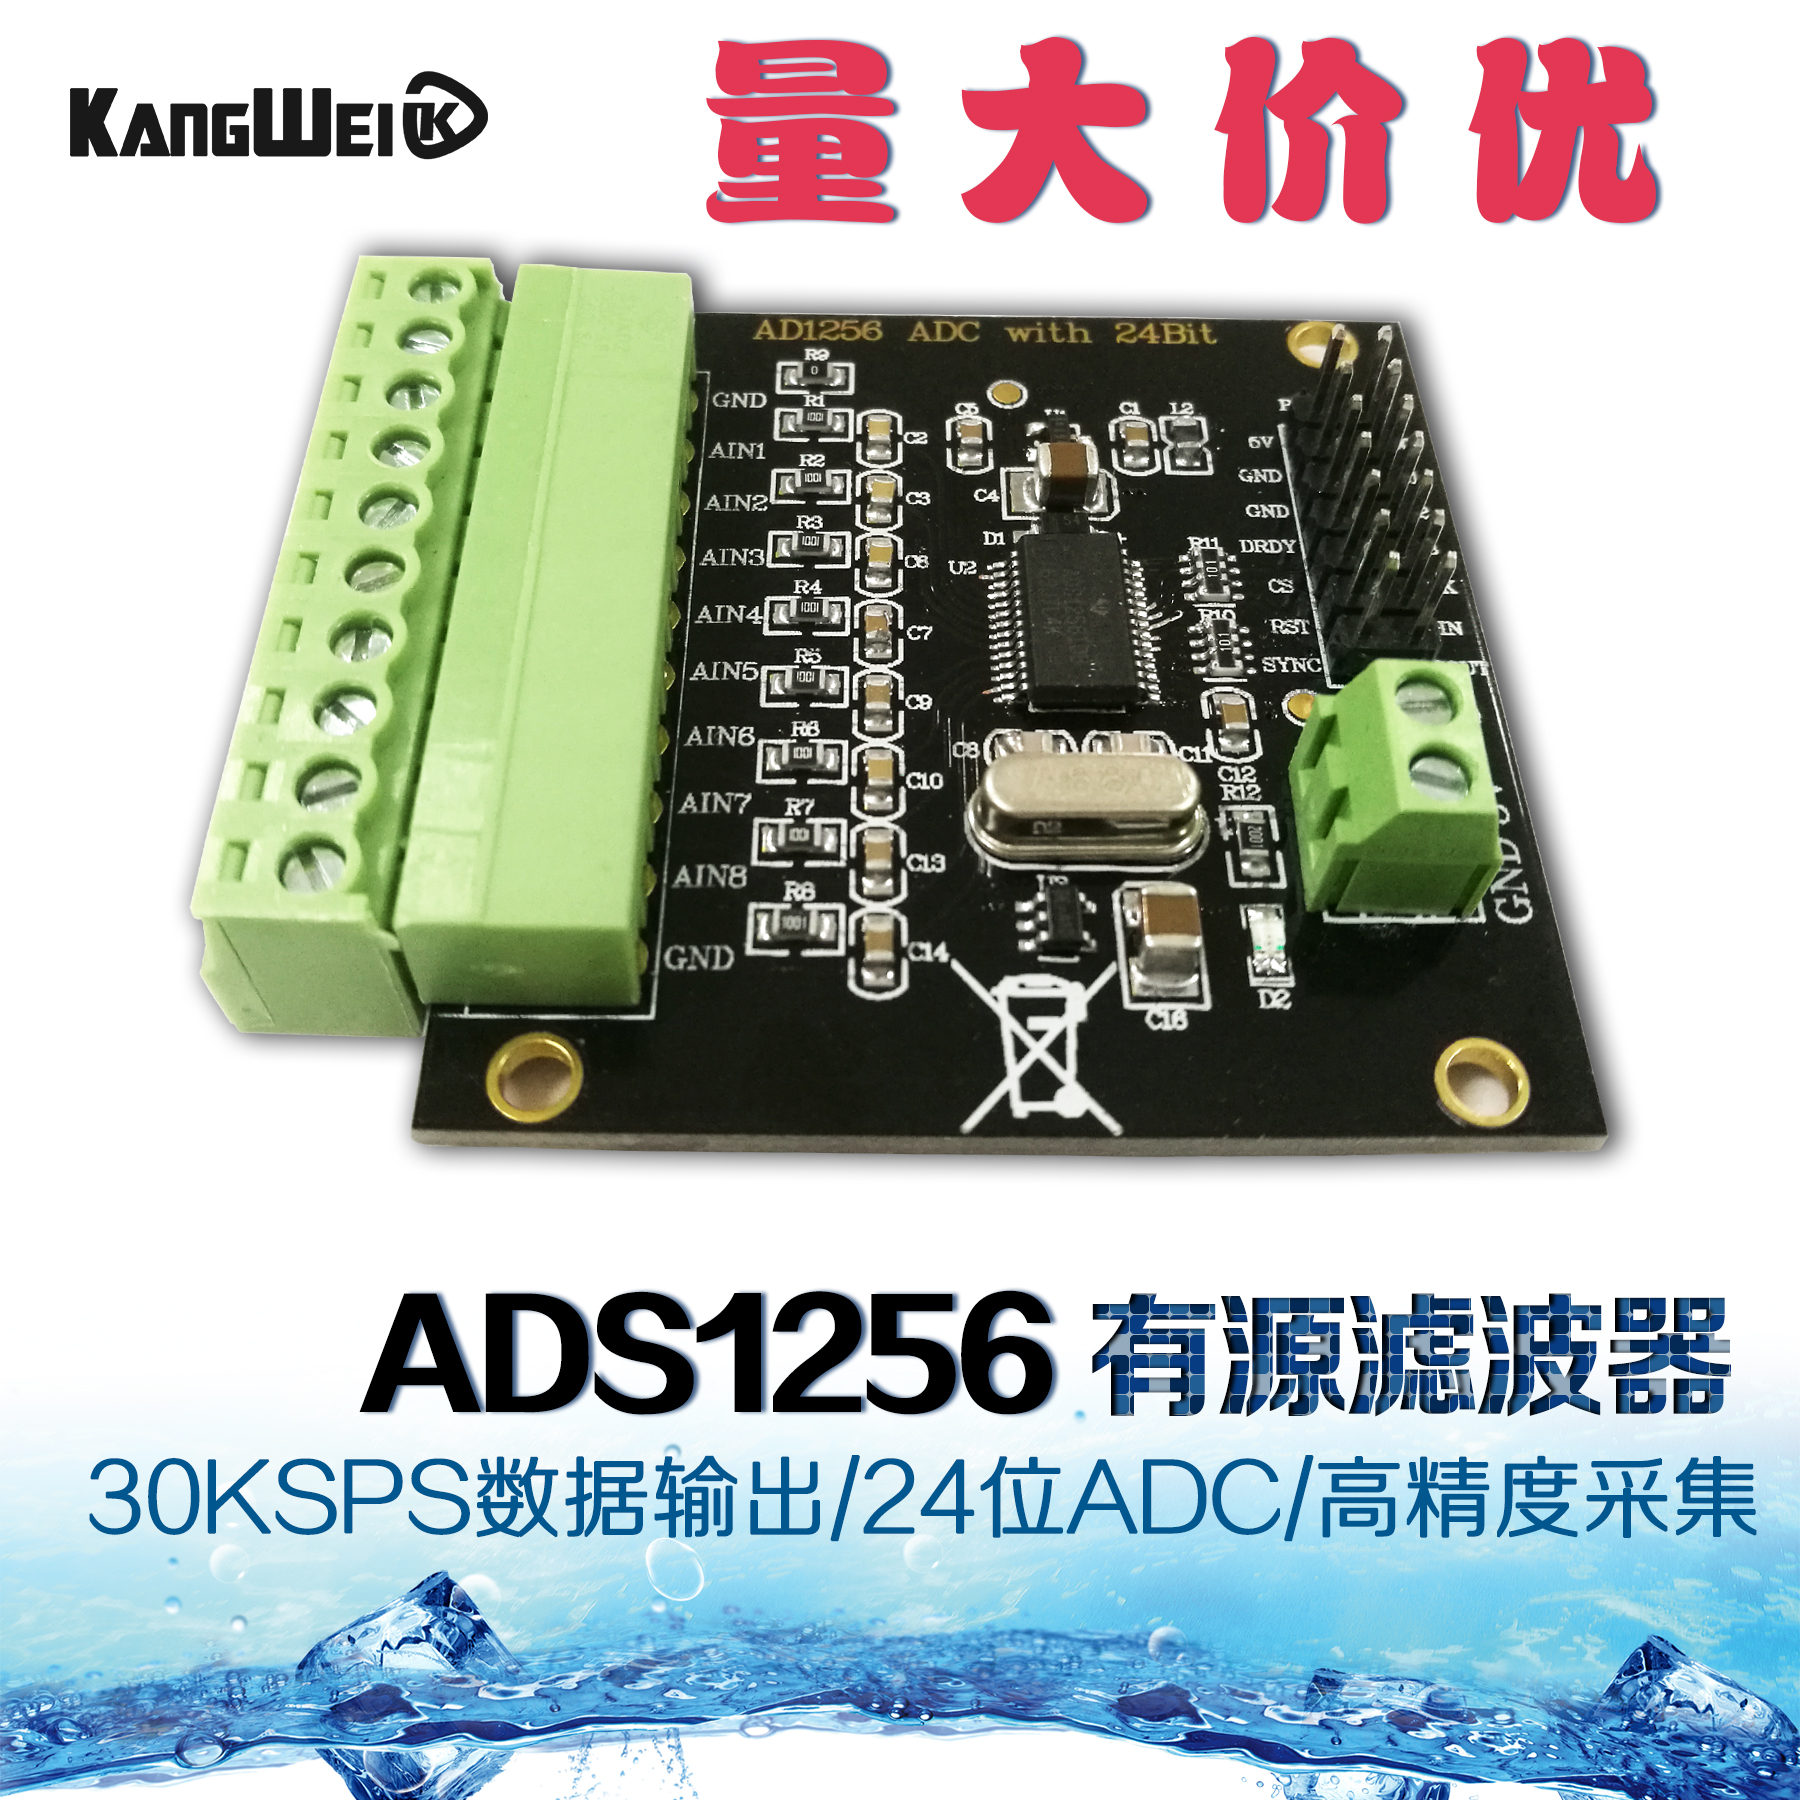 ADS1256 24 bit ADC AD module high precision ADC acquisition data acquisition card analog to digital converter high performance usb data acquisition card